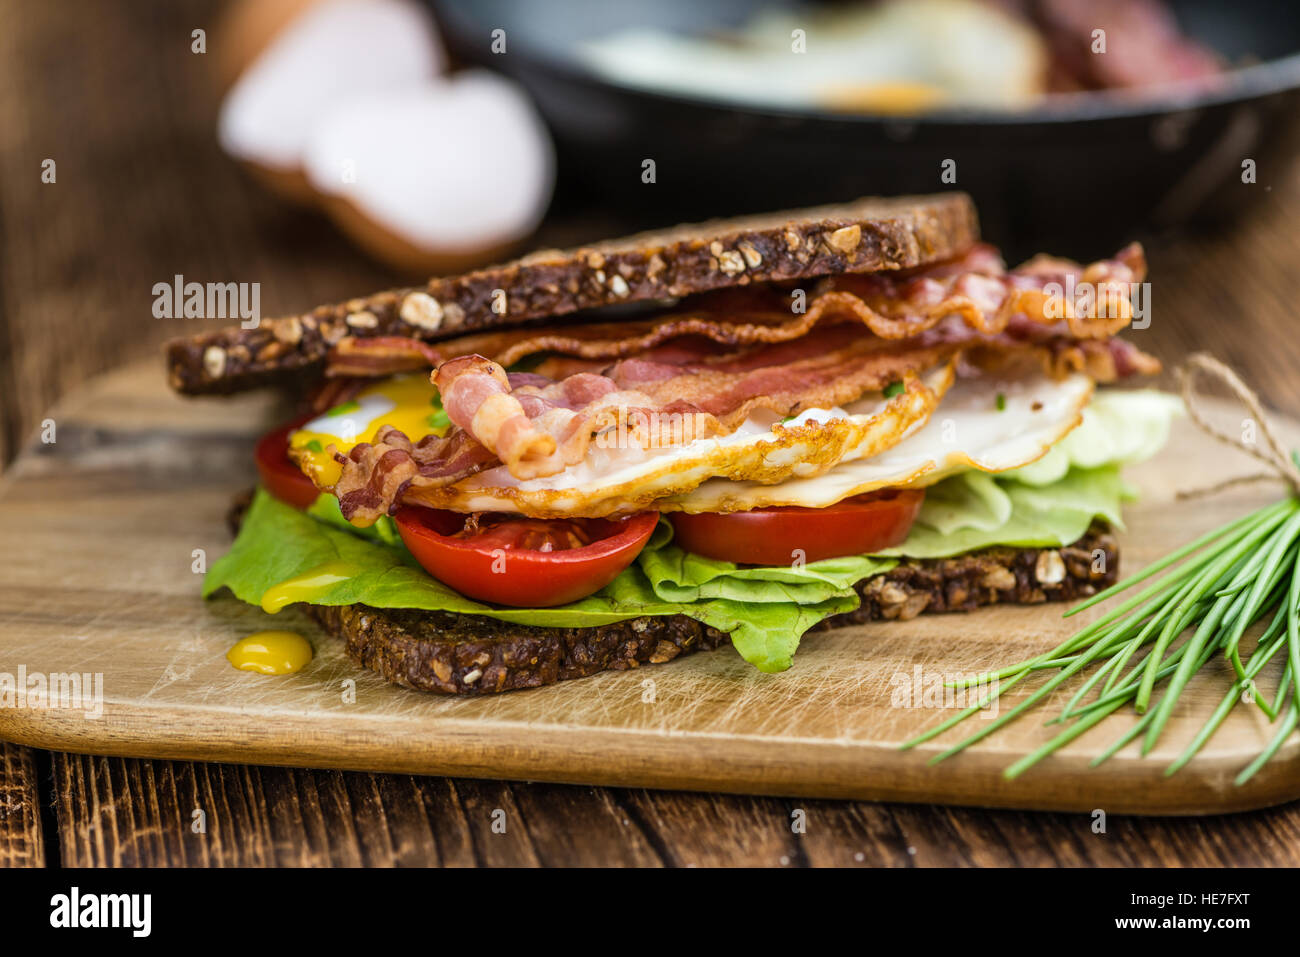 Portion of Bacon and Eggs (selective focus; close-up shot) - Stock Image